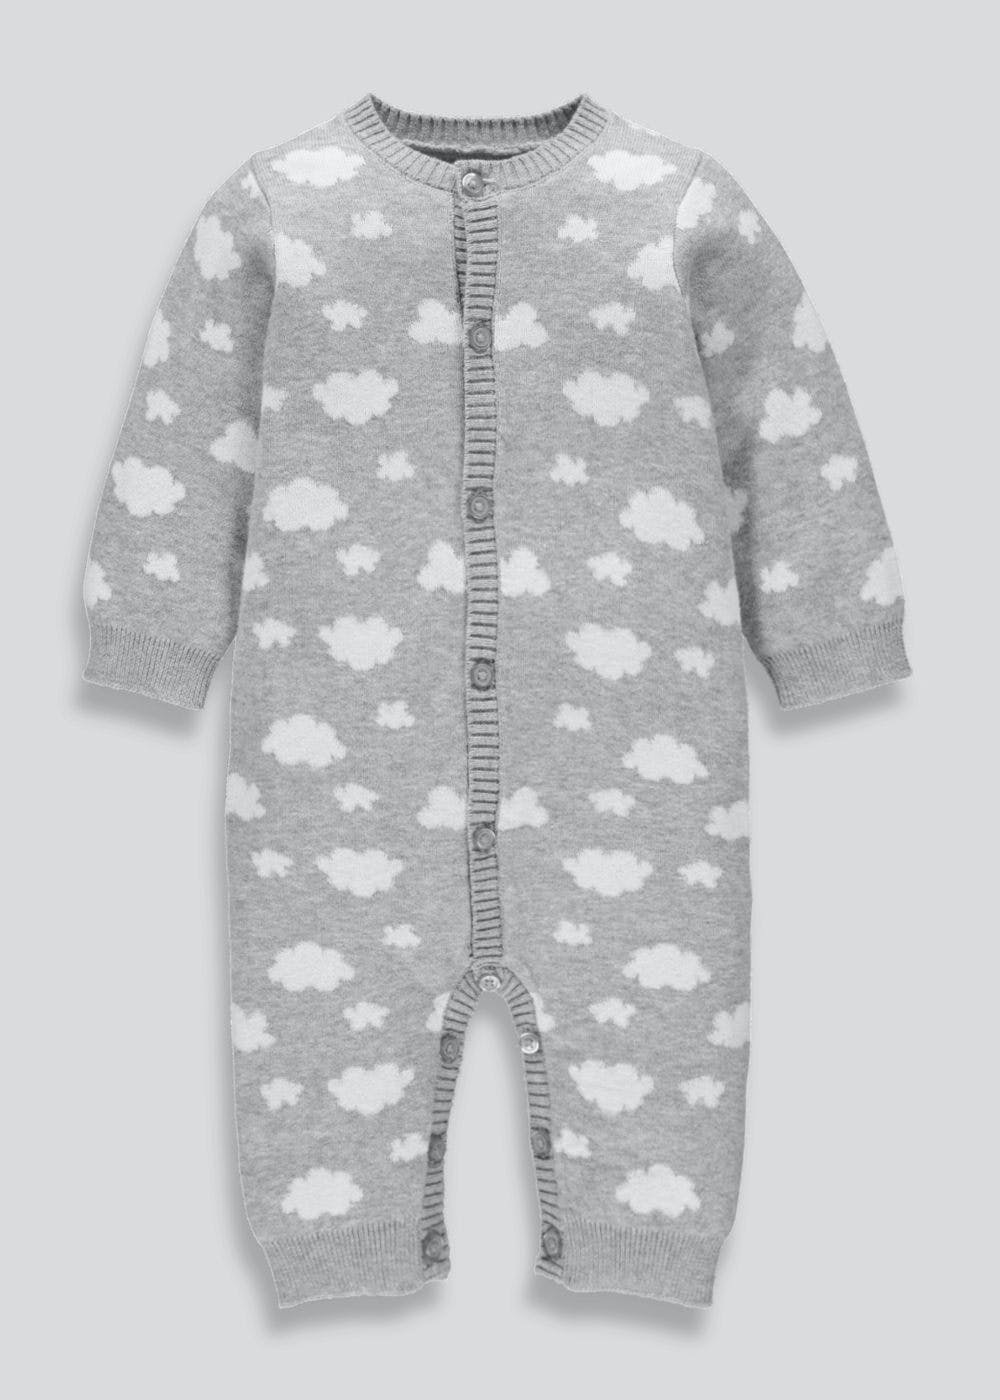 9187c16e64cc Unisex Cloud Knitted Romper (Tiny Baby-18mths) – Grey – Matalan